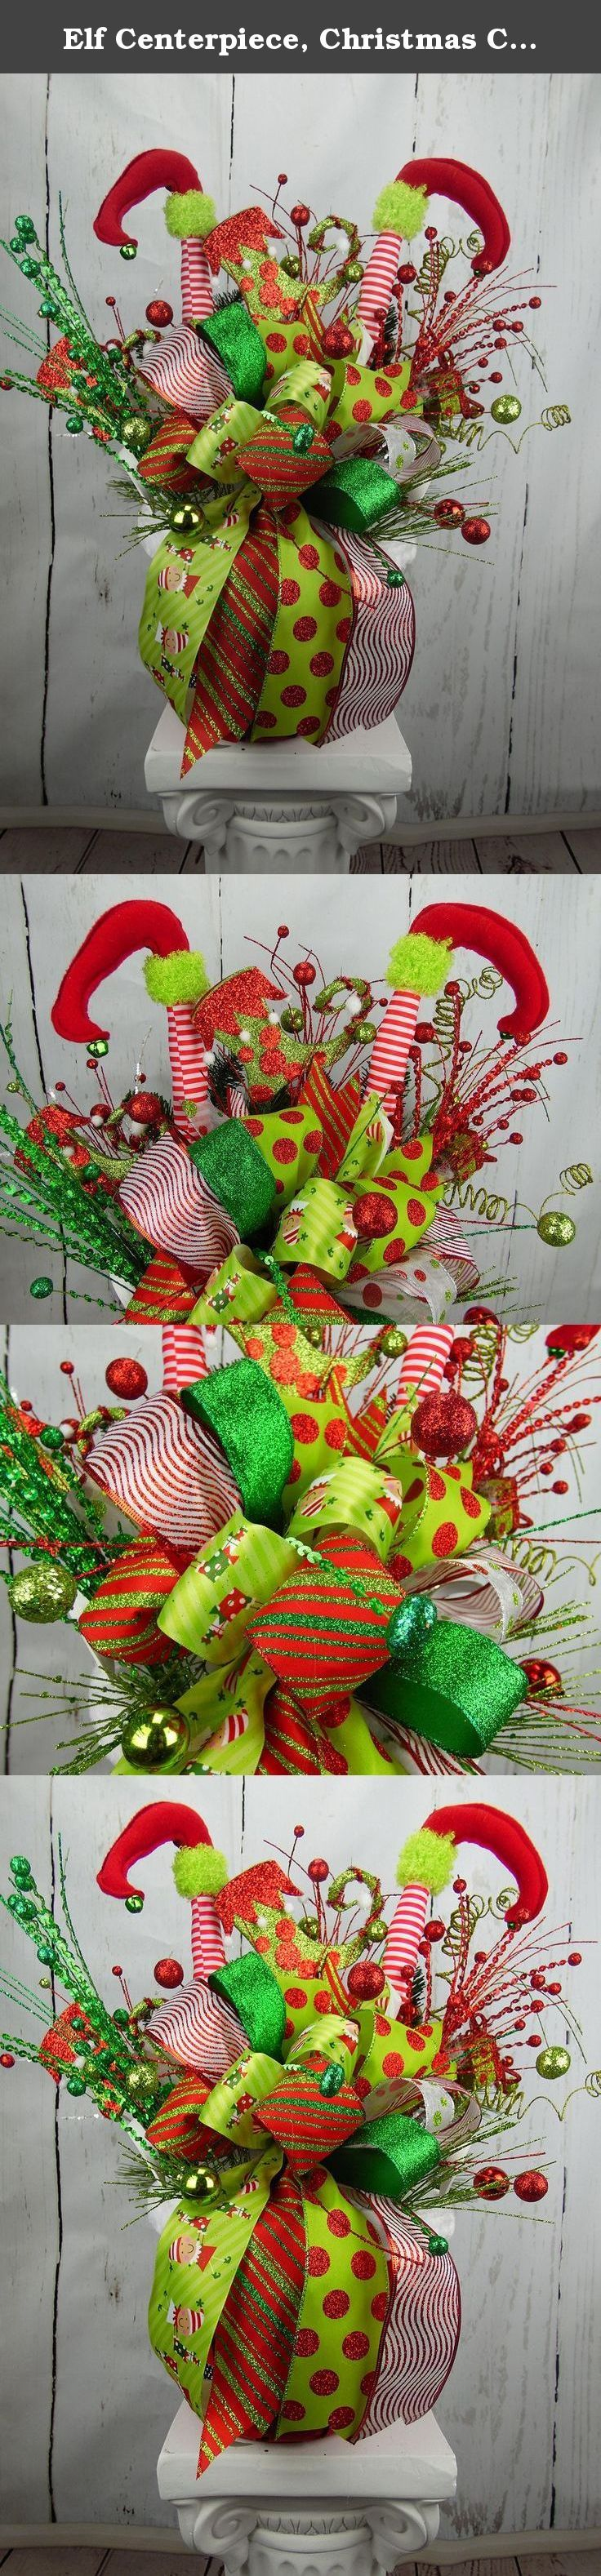 """Elf Centerpiece, Christmas Centerpiece, Holiday Centerpiece, Elf Leg Decor, Holiday Decor, Table Decor, Elf Decor, Red and Green Christmas. Celebrate the upcoming Holiday season with this cute centerpiece that features the traditional colors of Christmas. This cute red basket features a glittery """"belt"""" just like Santa!! The basket is filled with a large bow made up of 6 different wired holiday ribbons. The focal point of this centerpiece is the cute elf legs and shoes with the bells on…"""